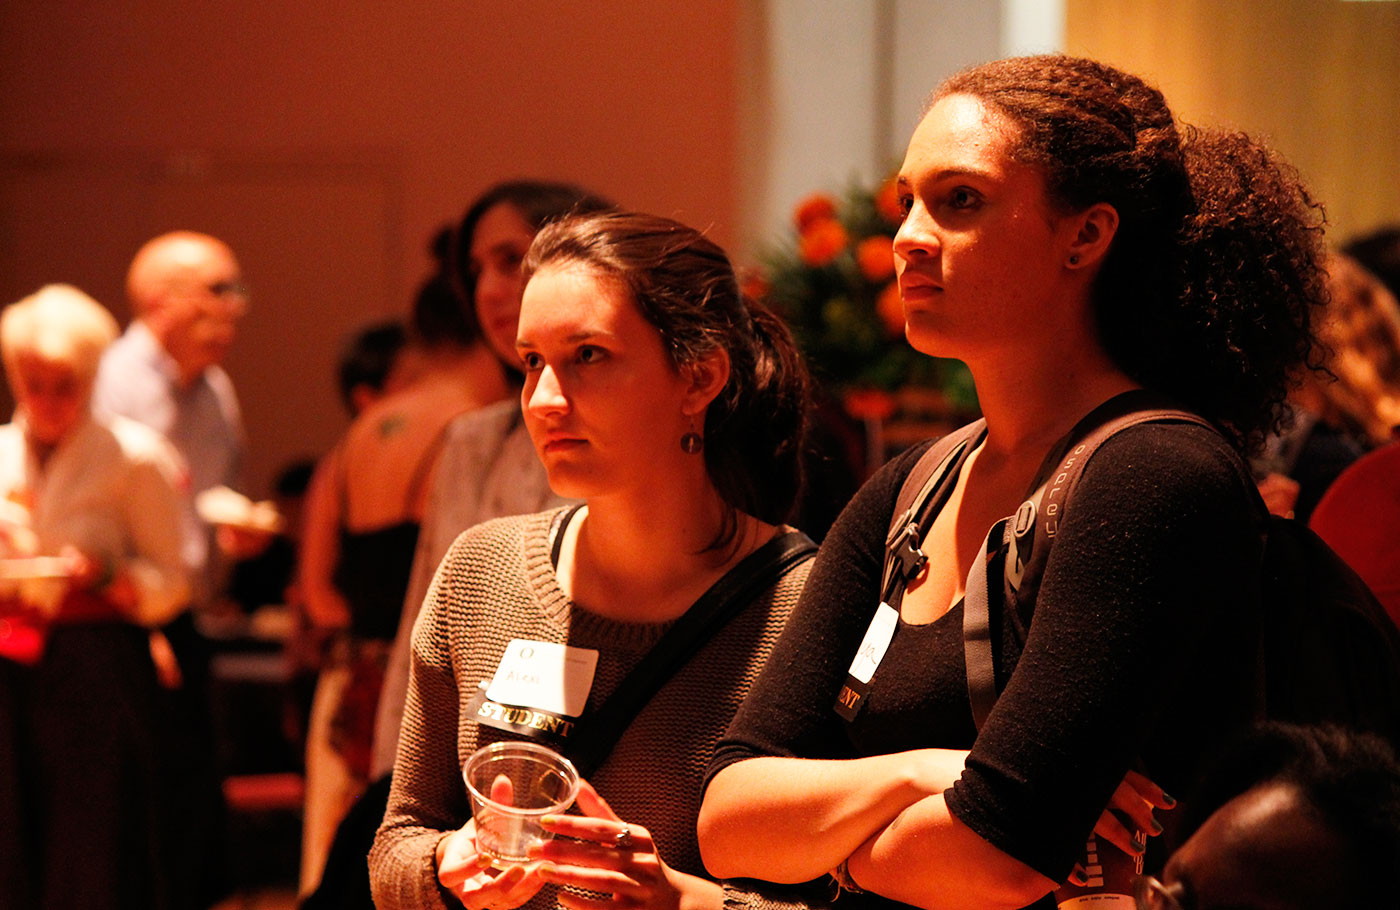 Crowds of students listen to speakers and enjoy refreshments at Weaving New Beginnings